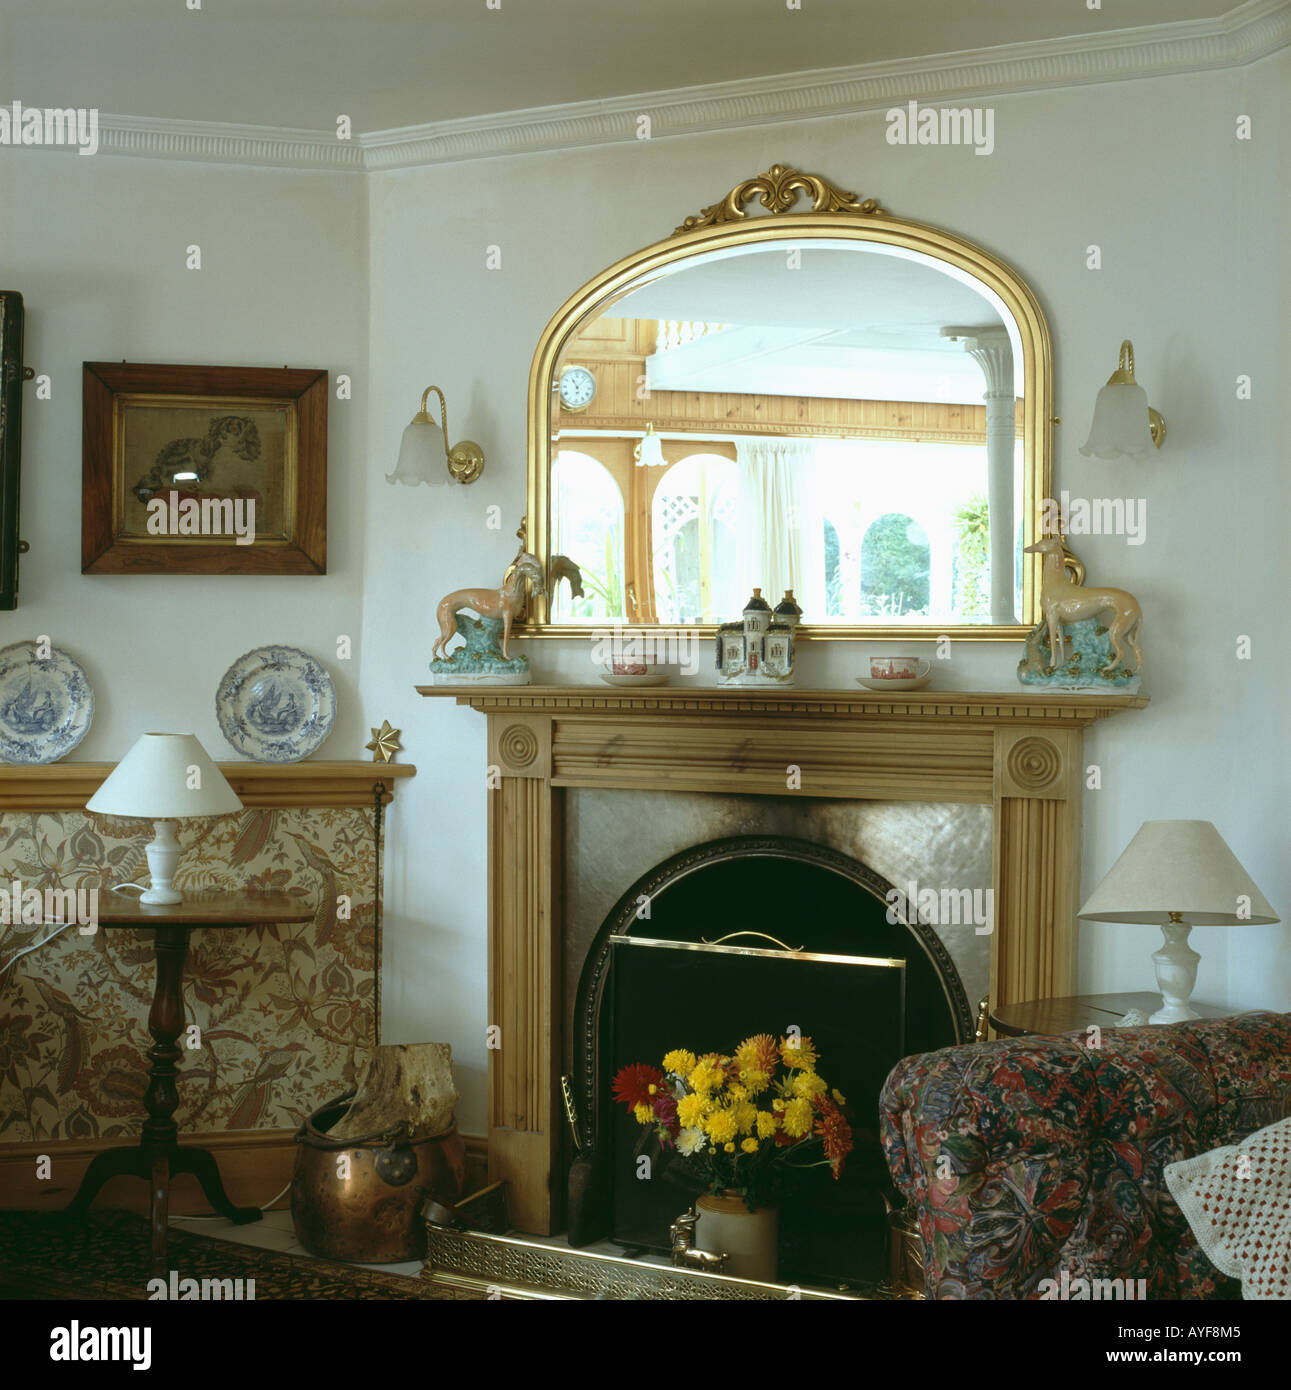 mantel over for mirrors sunburst ideas mirror brighten remodel image design decor and photos above fireplace your